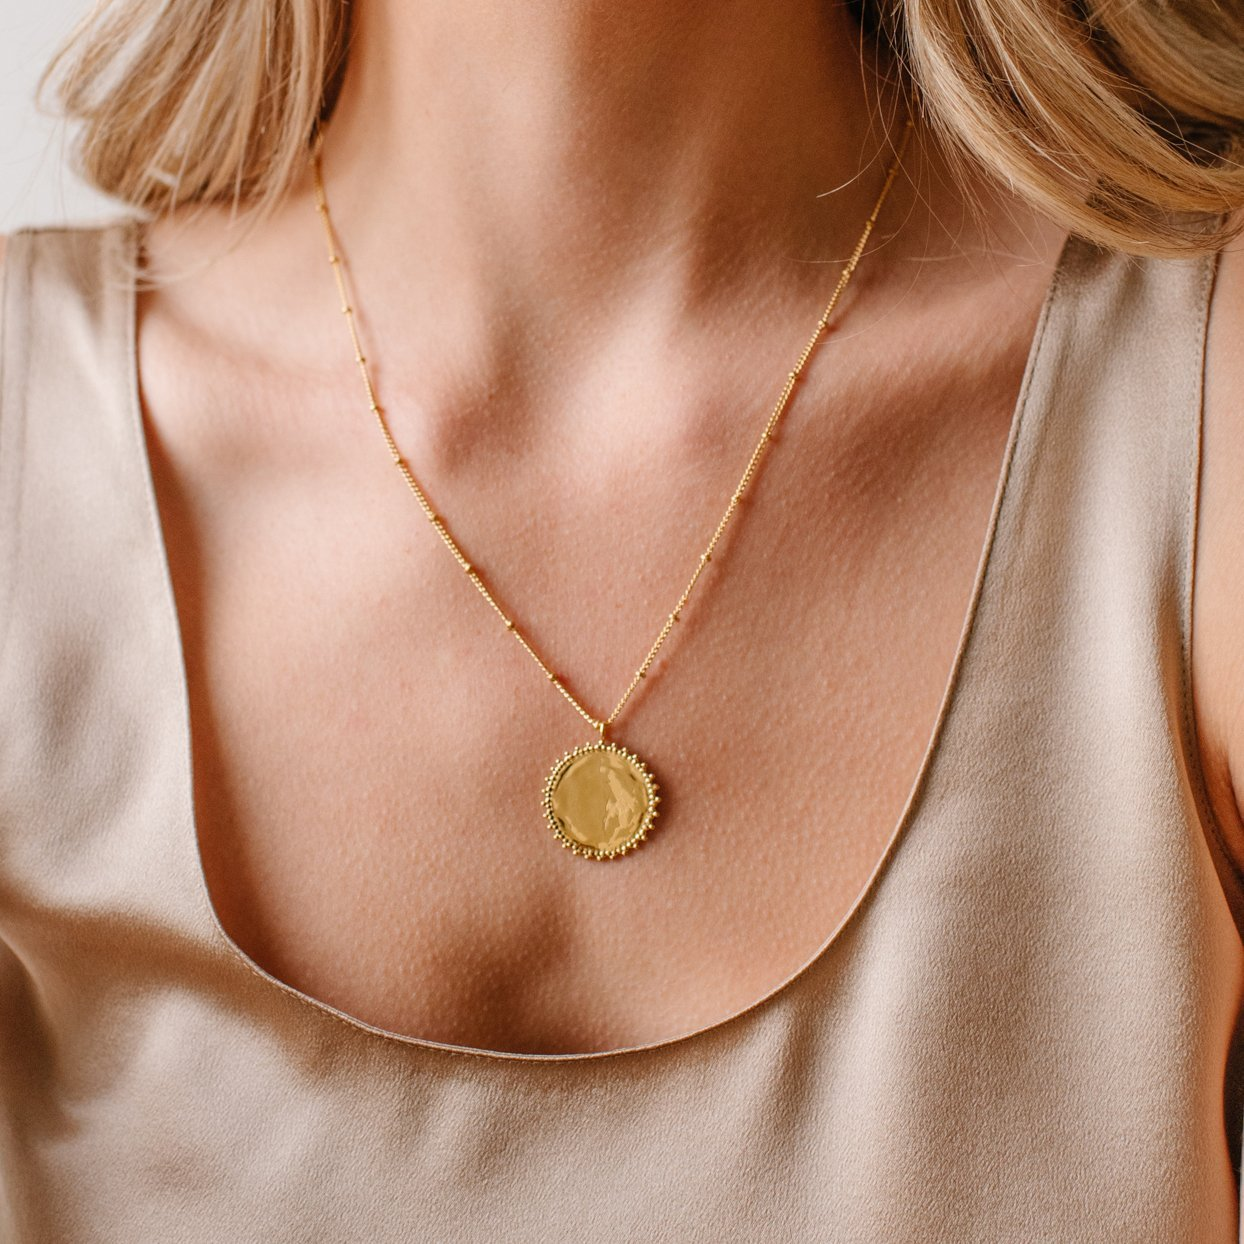 BELIEVE SOLEIL COIN PENDANT NECKLACE - GOLD - SO PRETTY CARA COTTER